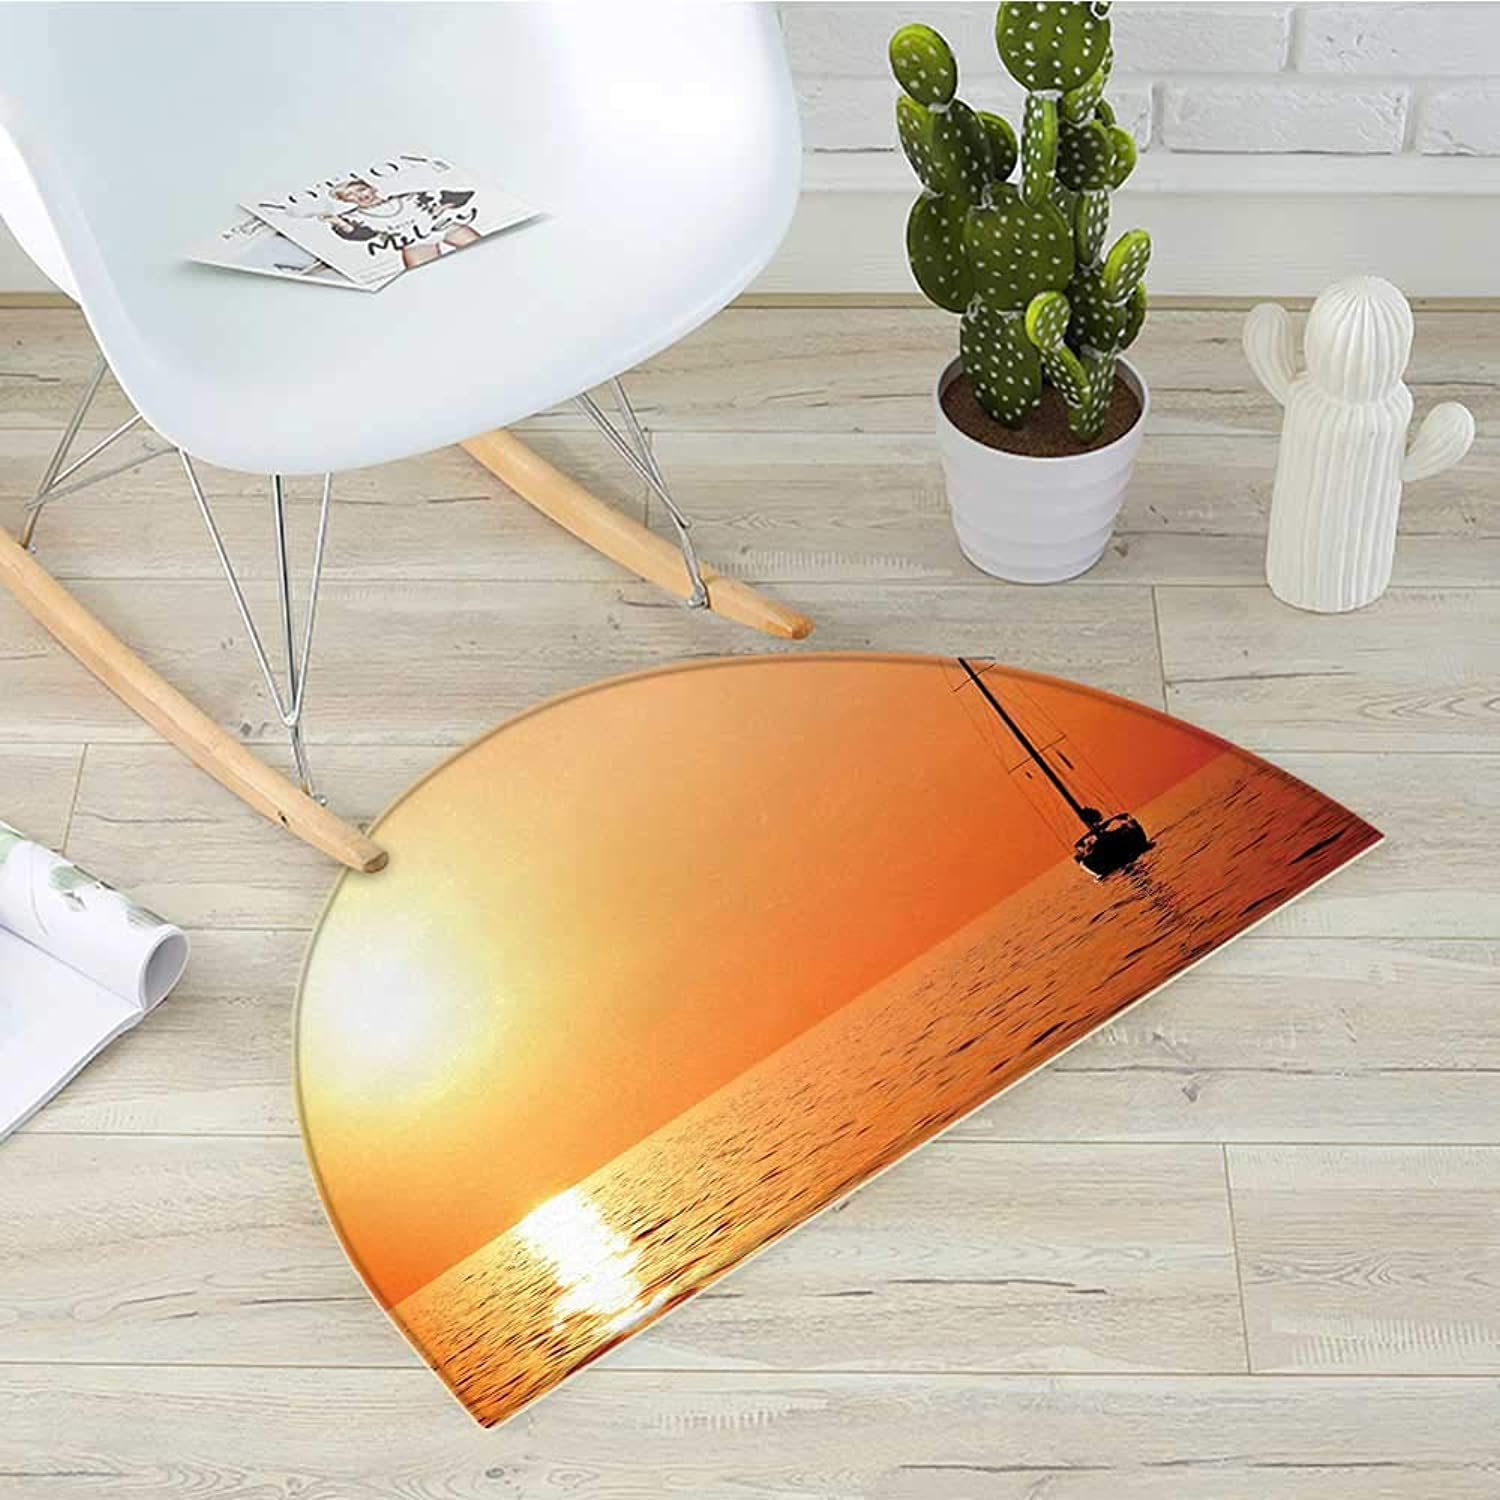 Sailboat Semicircular CushionLonely Yacht at Sunset Sailing Competition Race Teamwork Marine Vessel Winner Entry Door Mat H 19.7  xD 31.5  orange Yellow